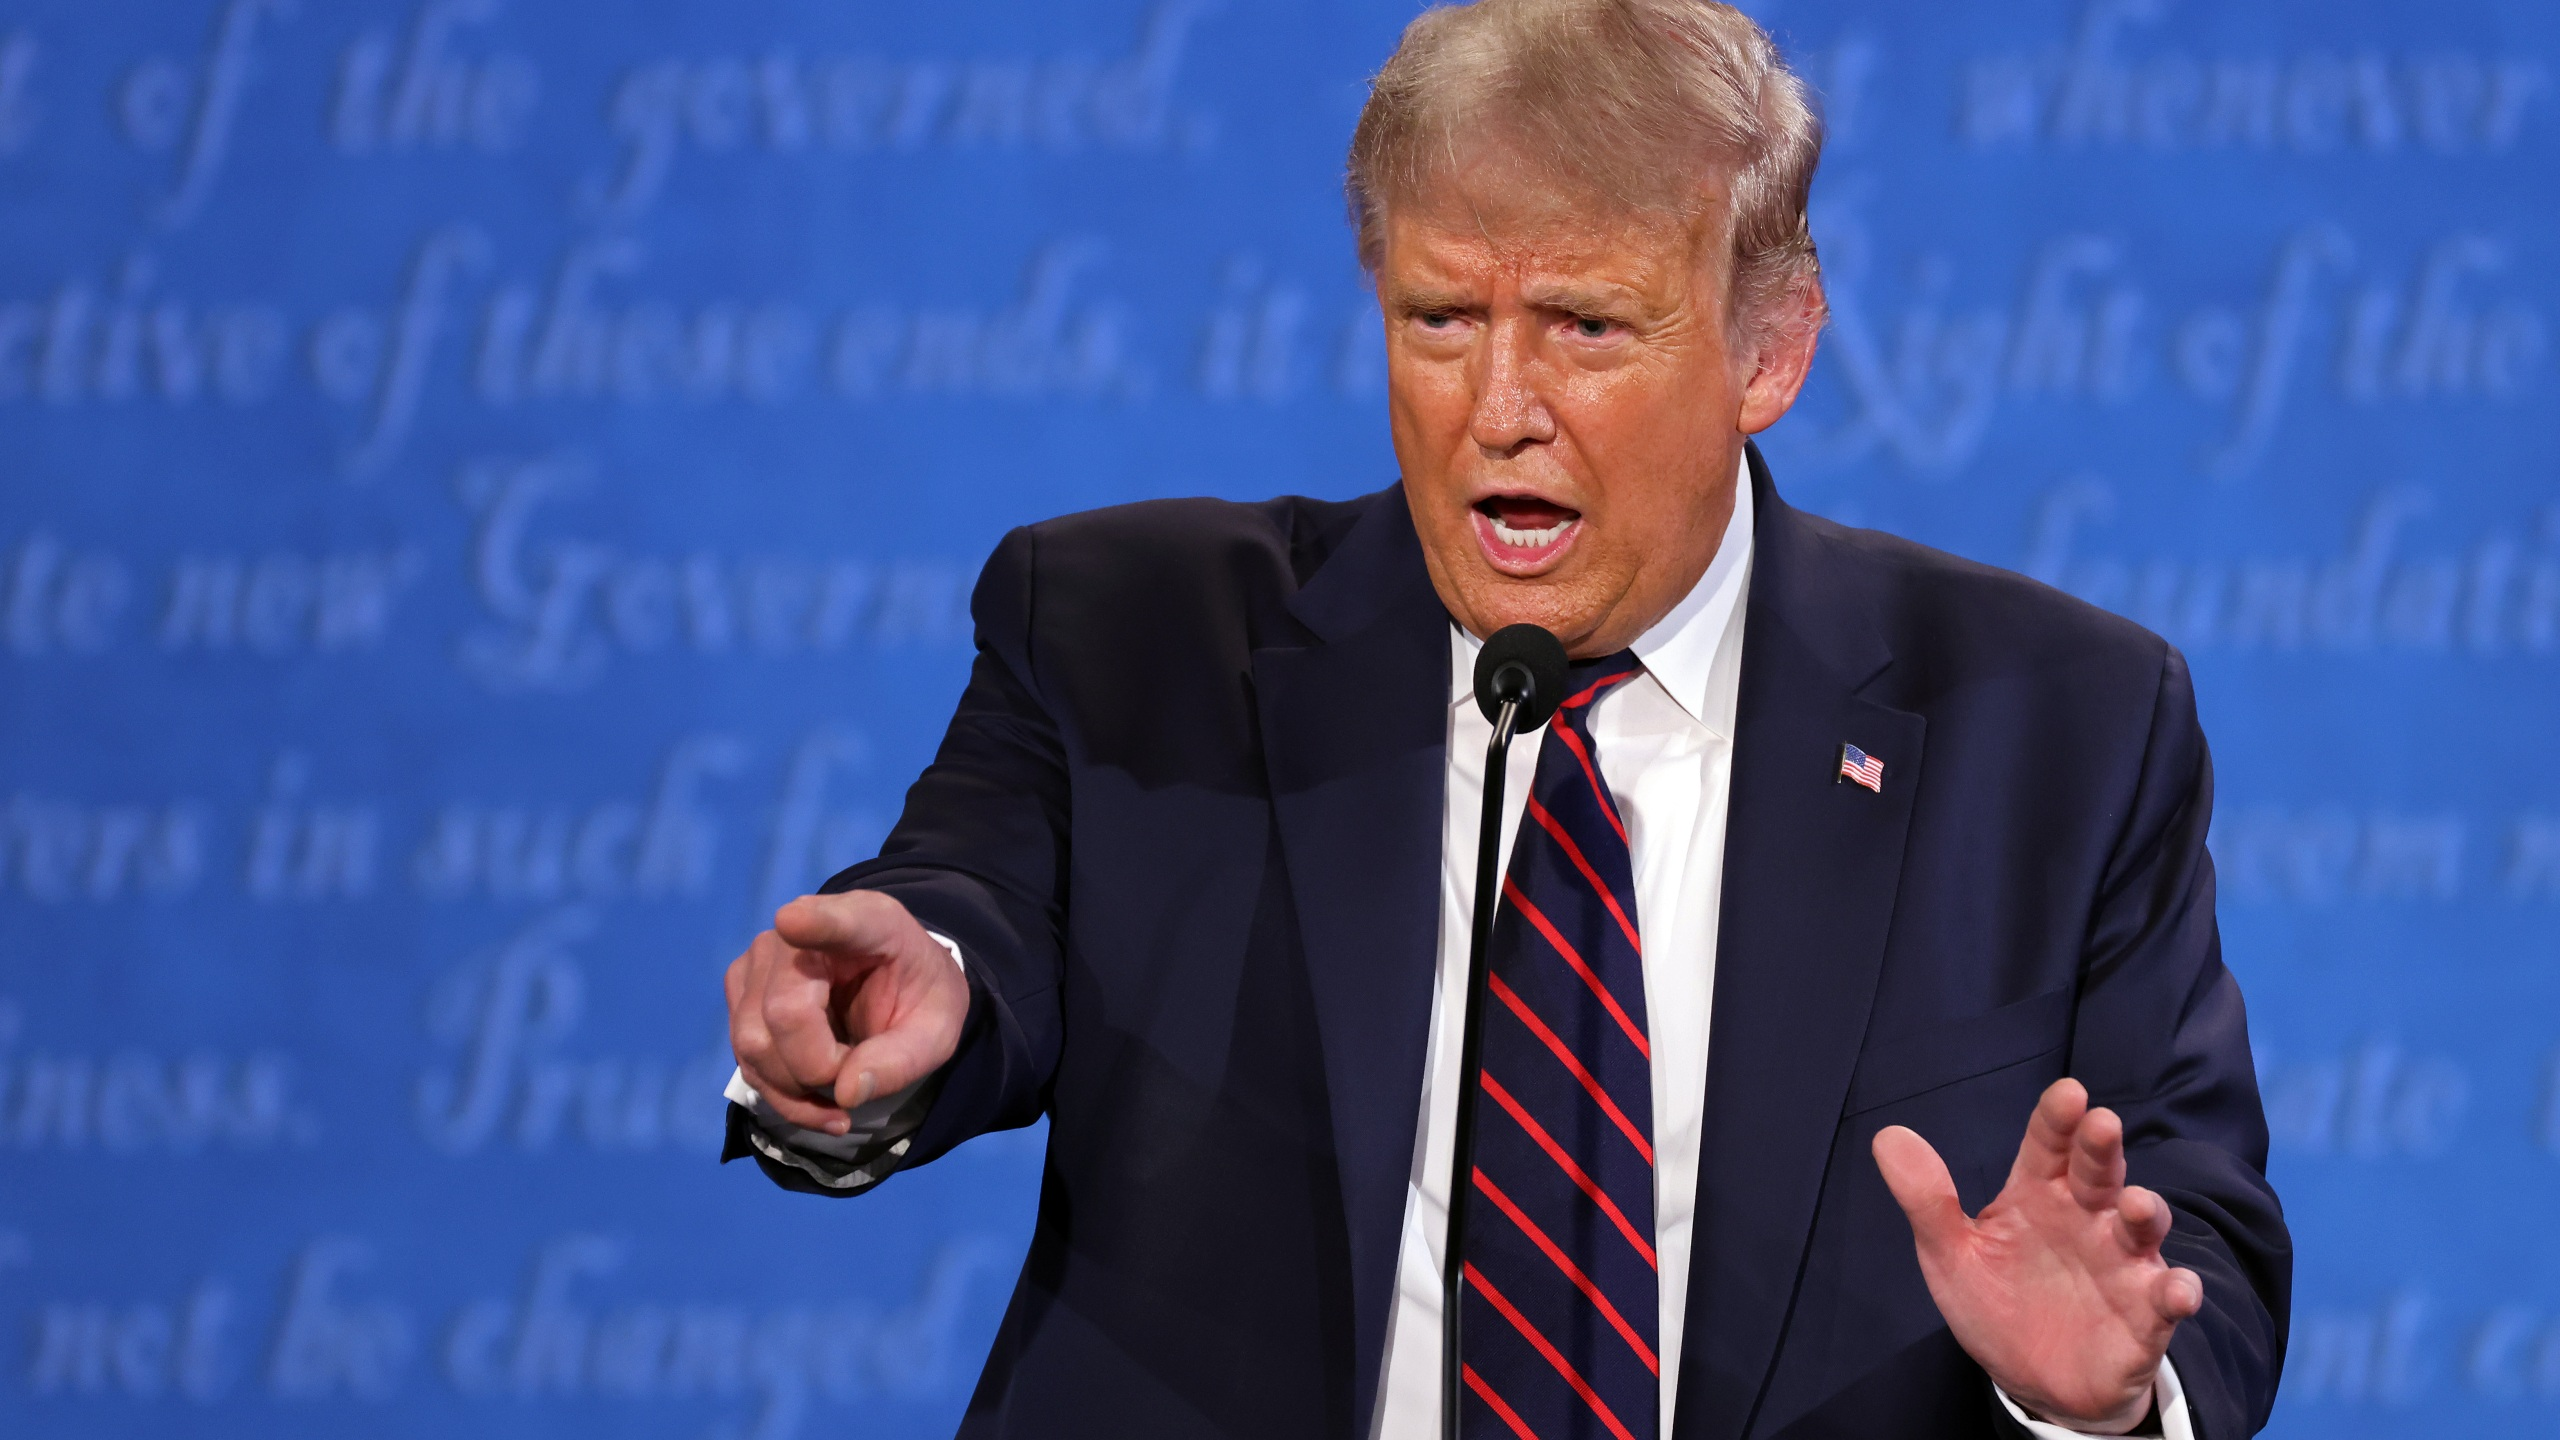 President Trump in the first presidential debate at the Health Education Campus of Case Western Reserve University in Cleveland, Ohio. (Photo by Win McNamee/Getty Images)